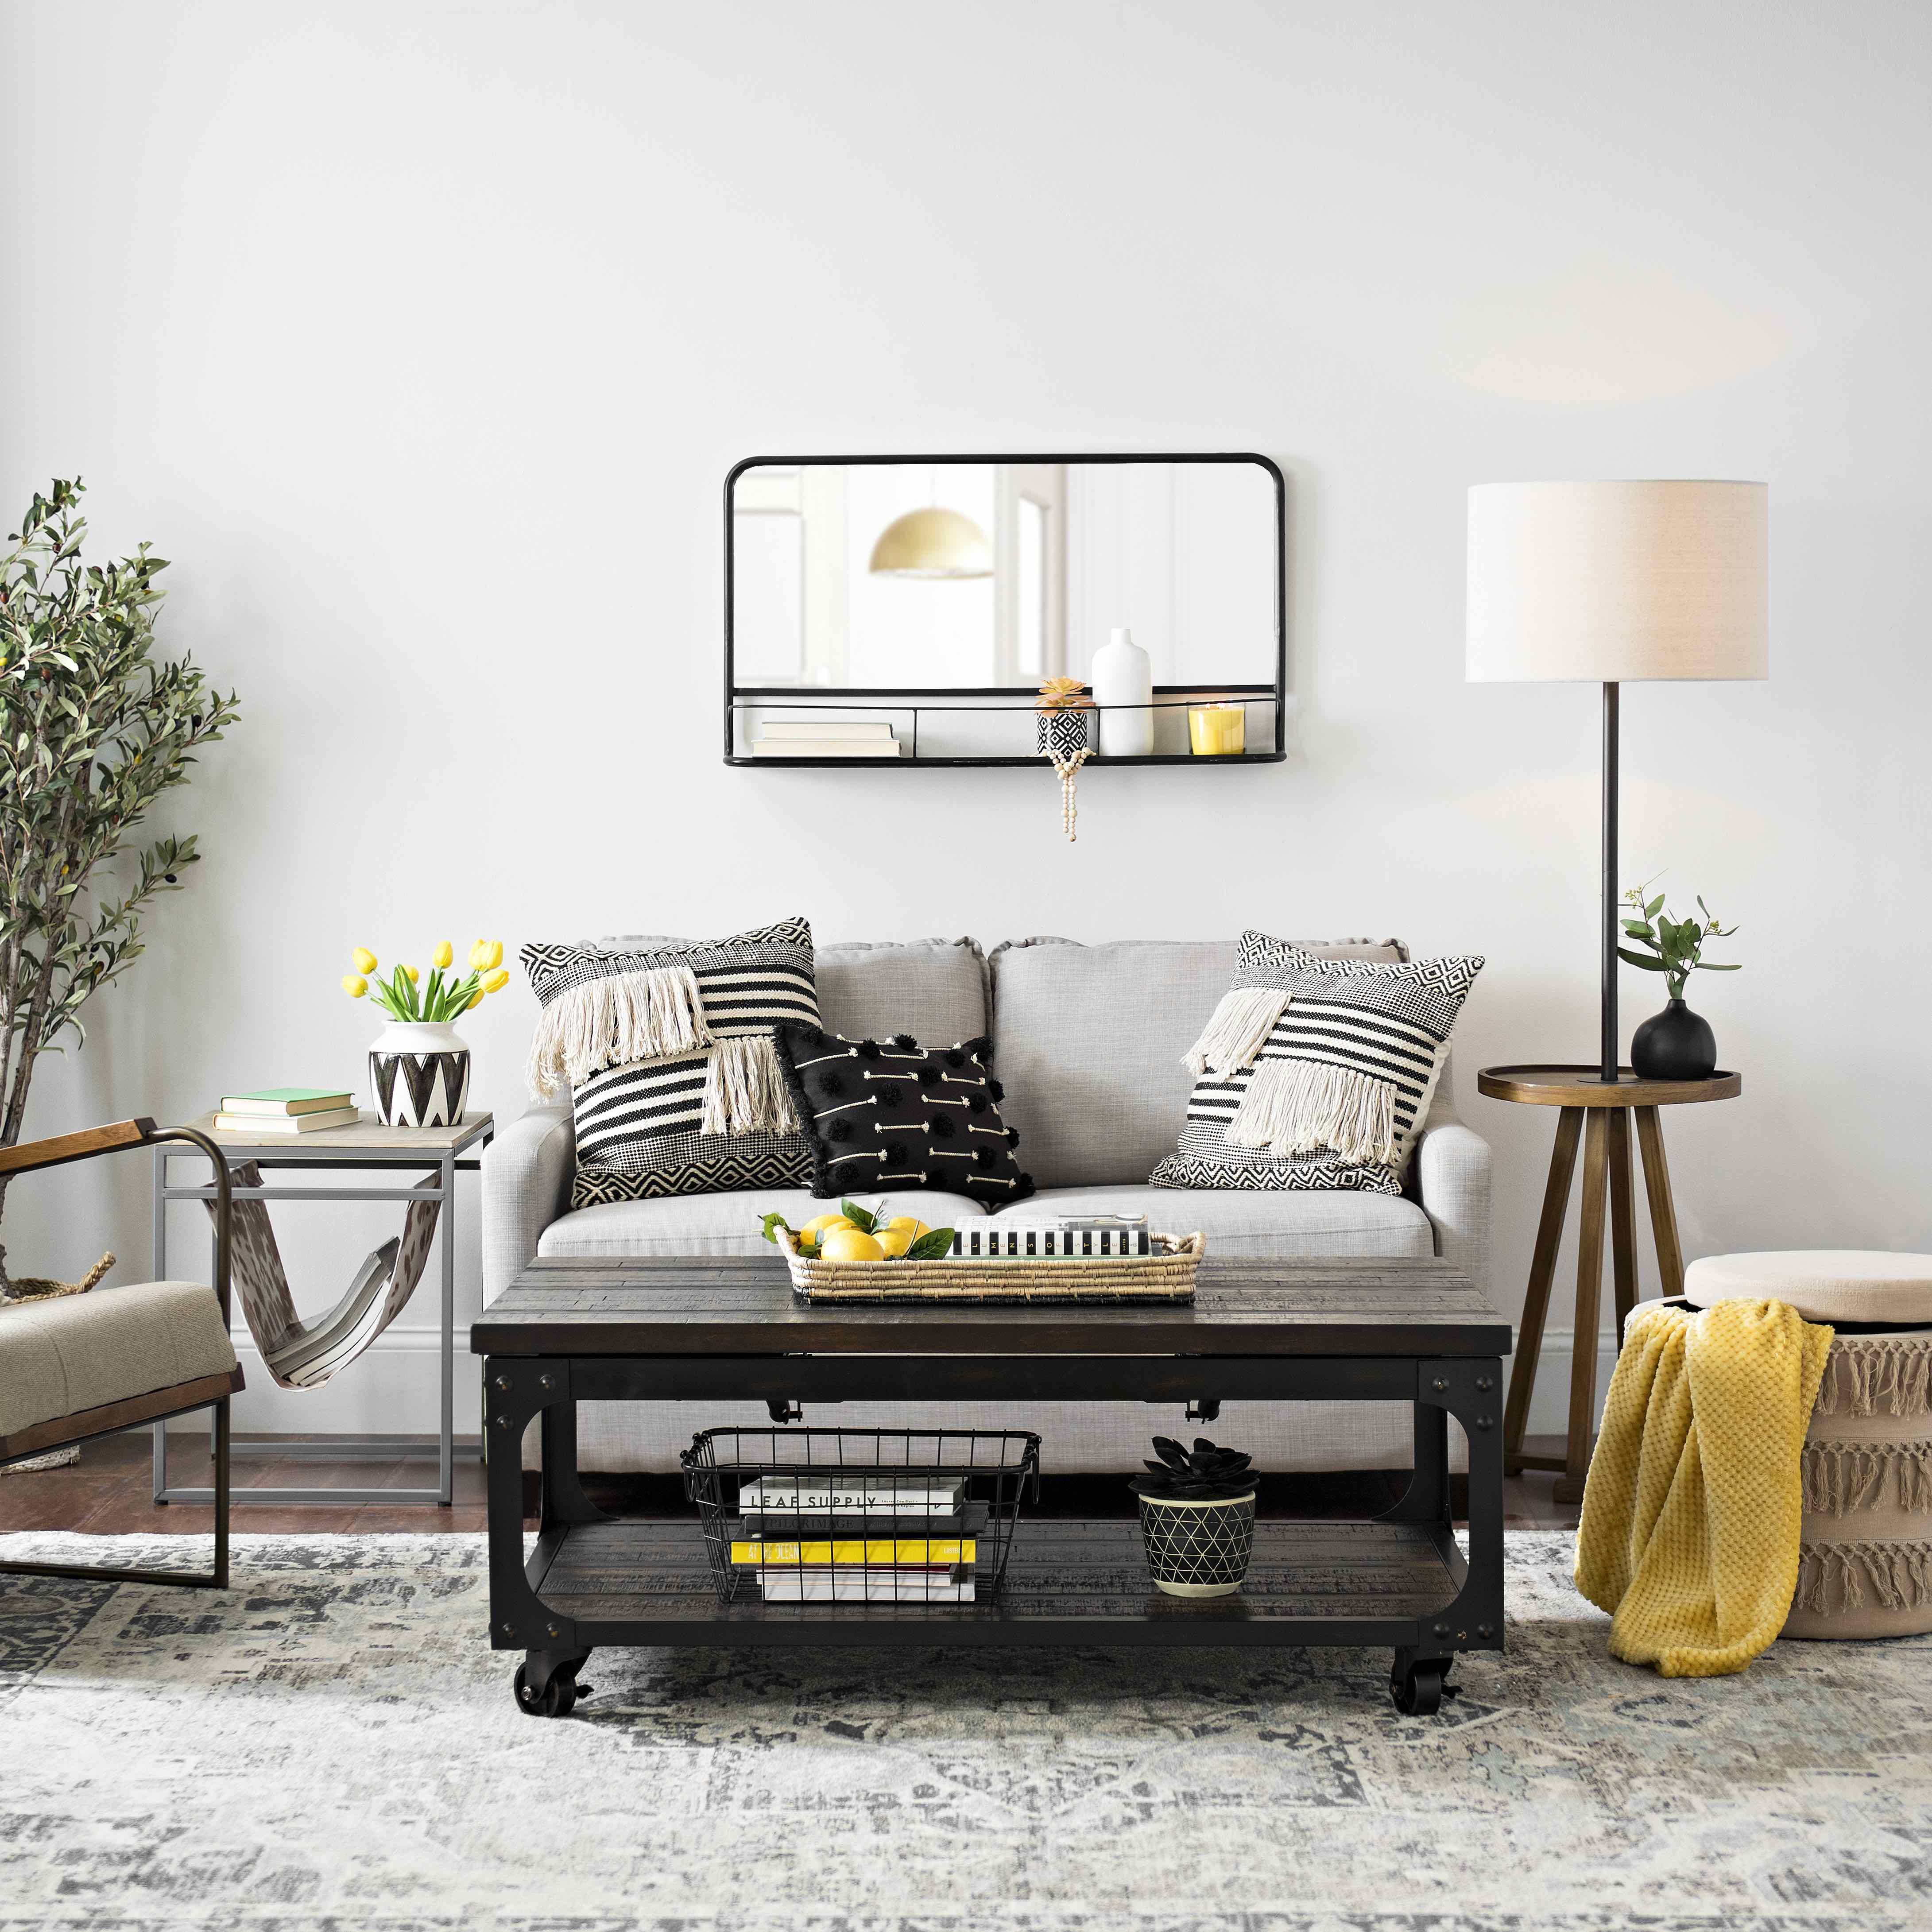 Add A Touch Of Modern With Yellow Accents Indoor Plants